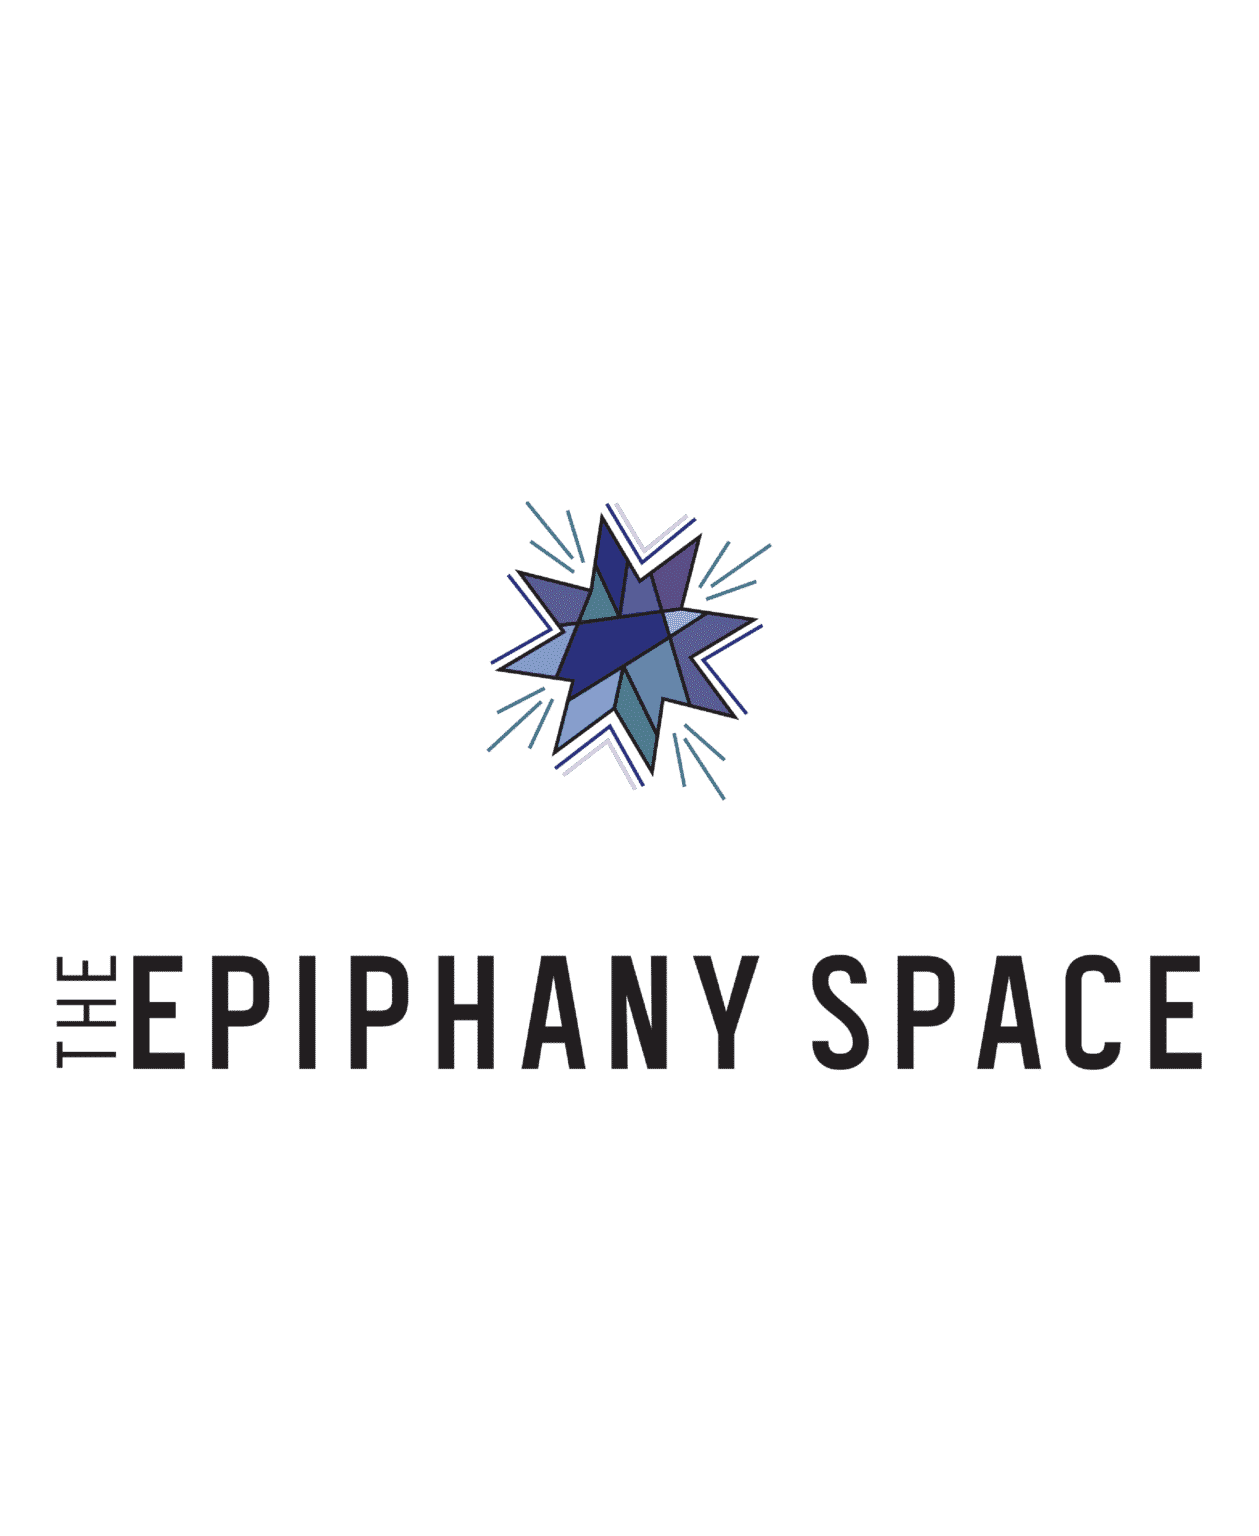 Epiphany Space